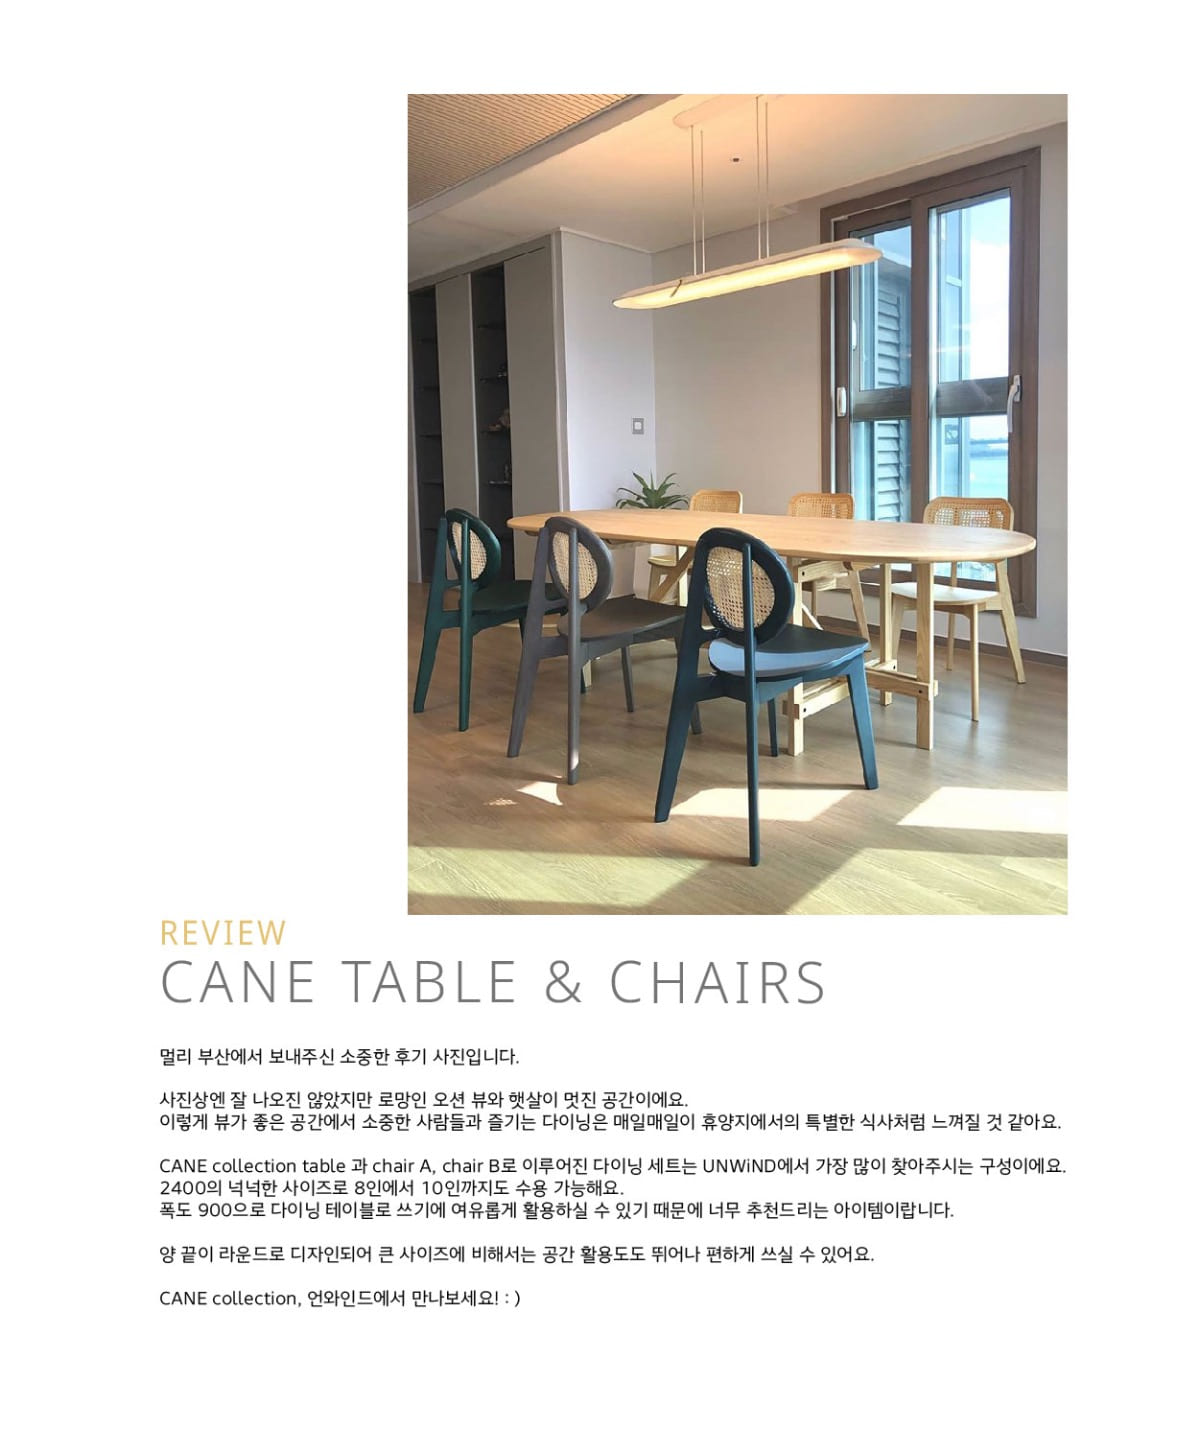 CANE table & chairs